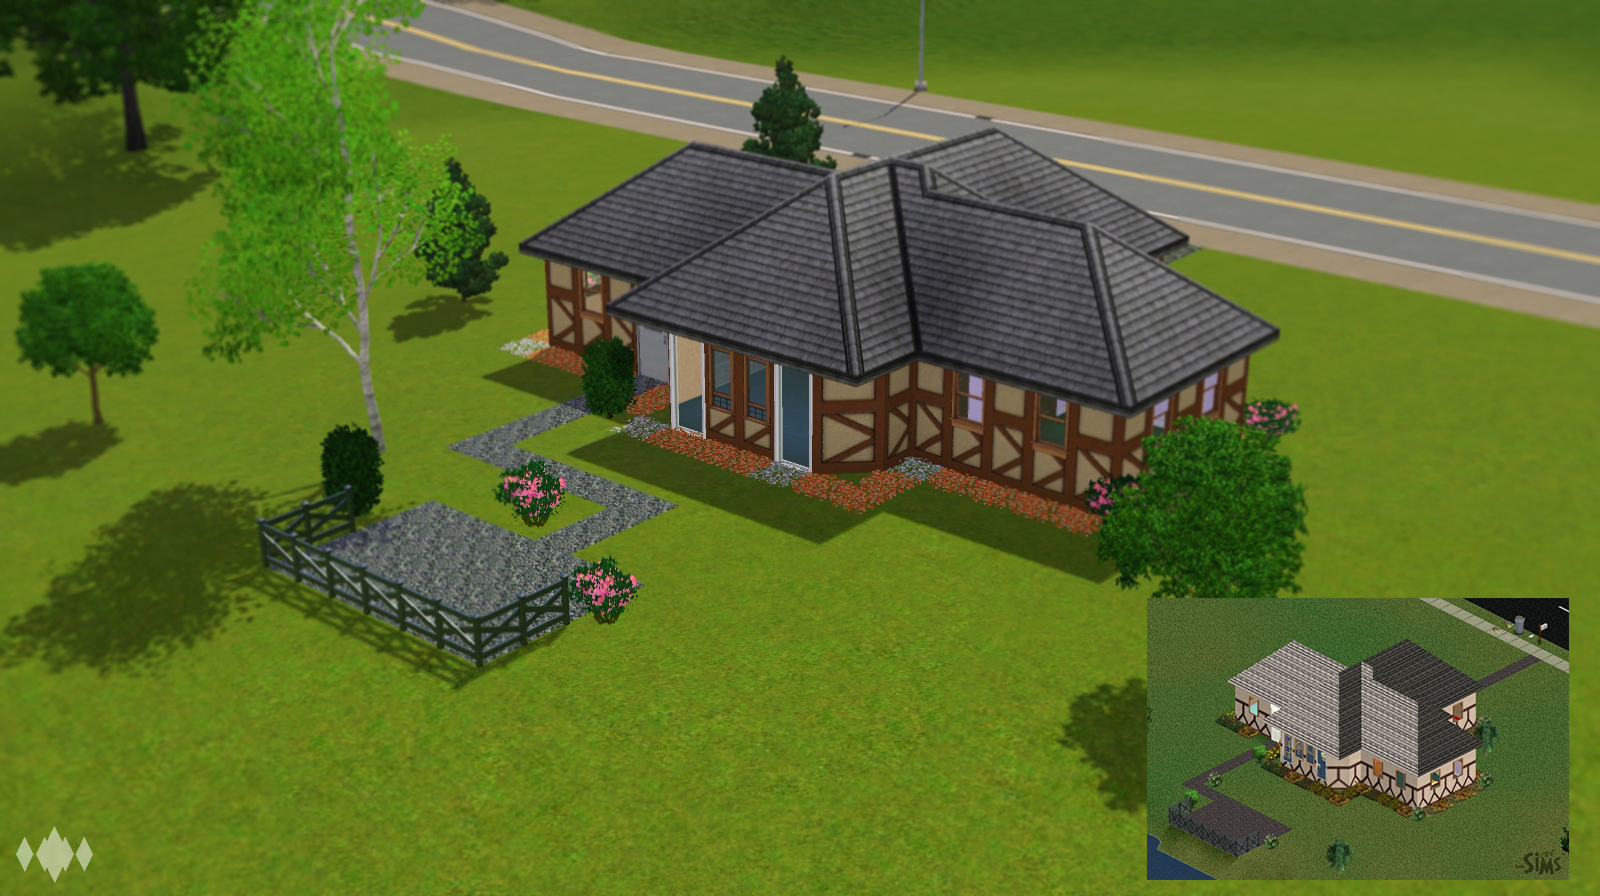 calle-sim-10-recreacion-en-los-sims-3